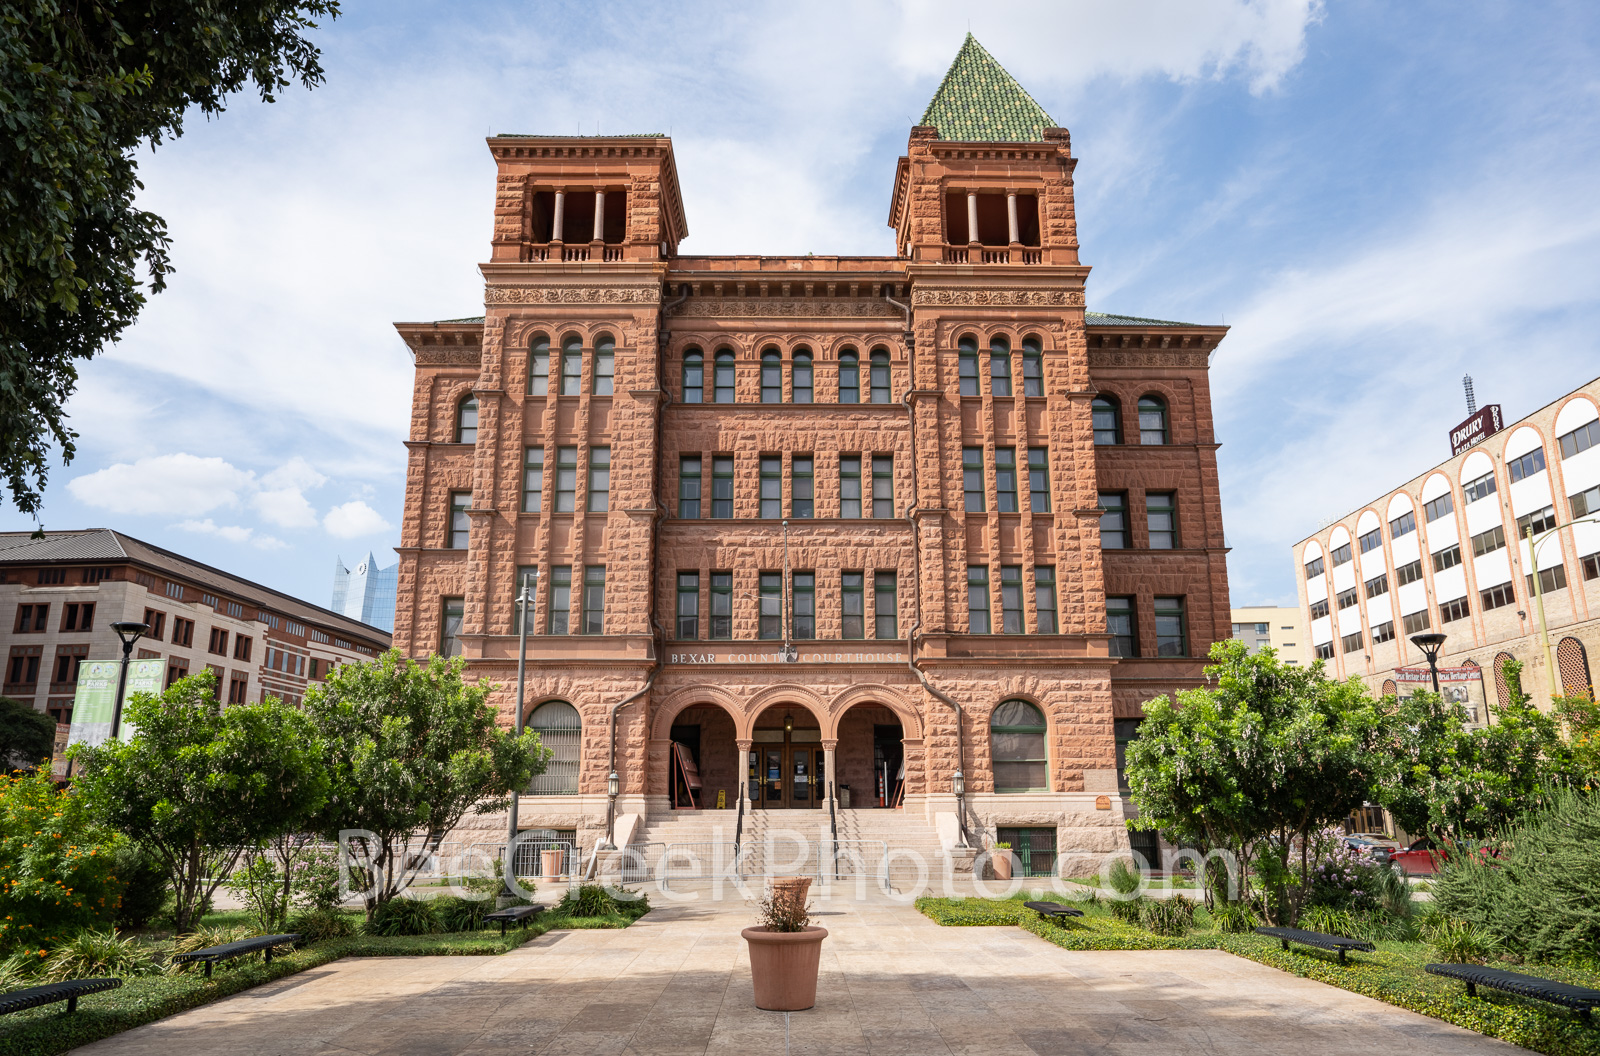 Bexar County Courthouse - This is the San Antonio country courthouse built in 1896. This historic site is the oldest continuous...